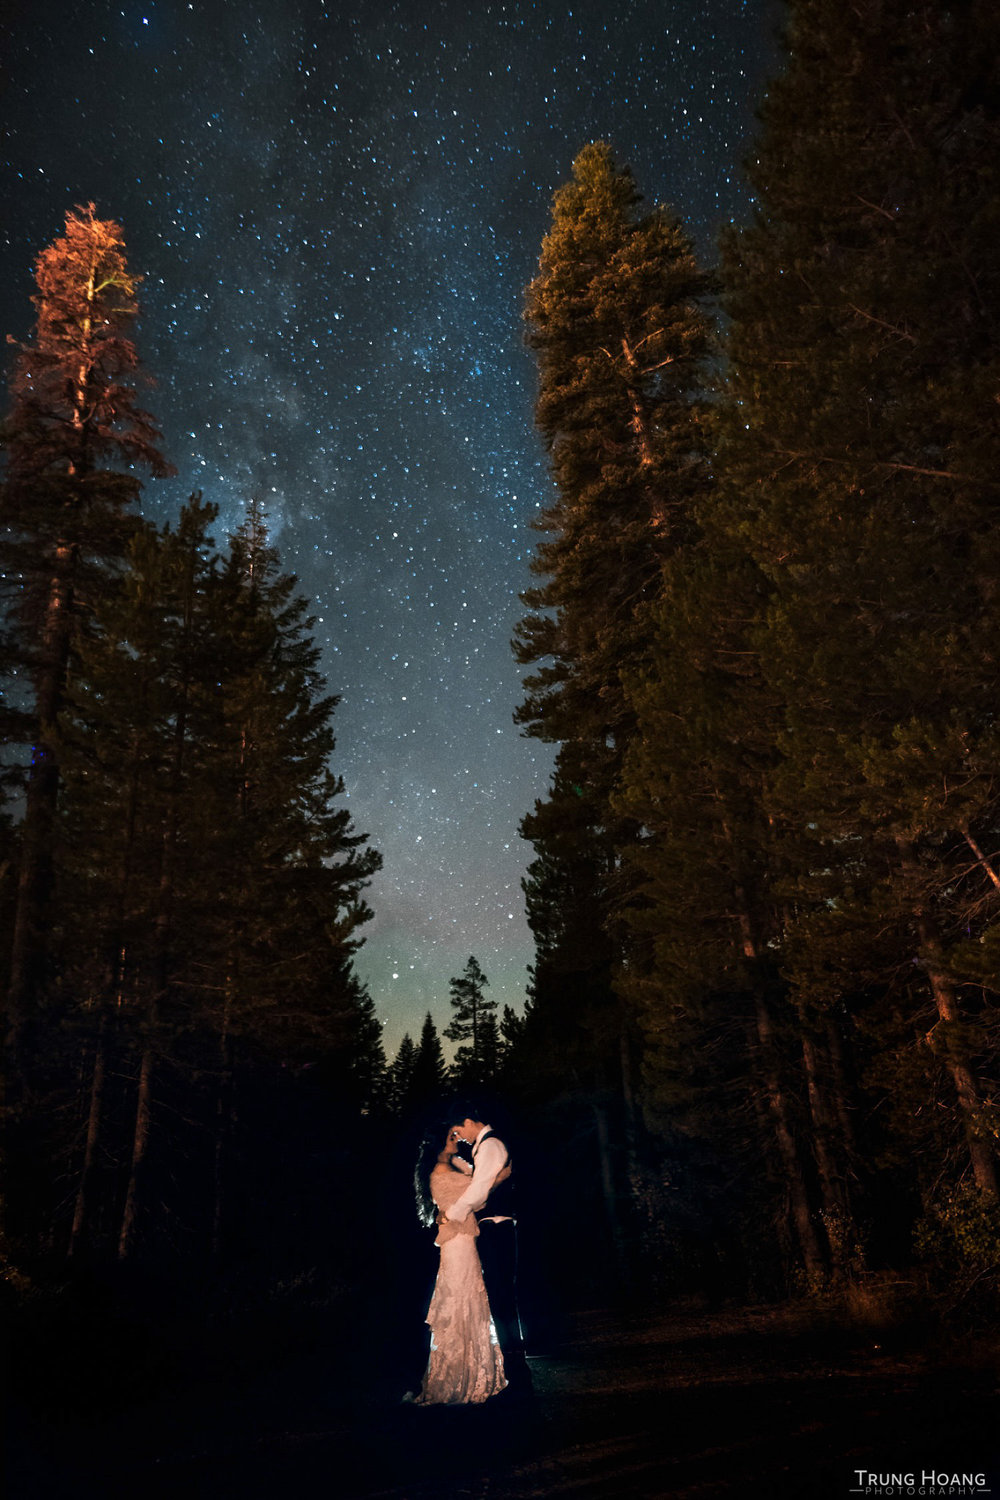 Night Sky Couples Portrait